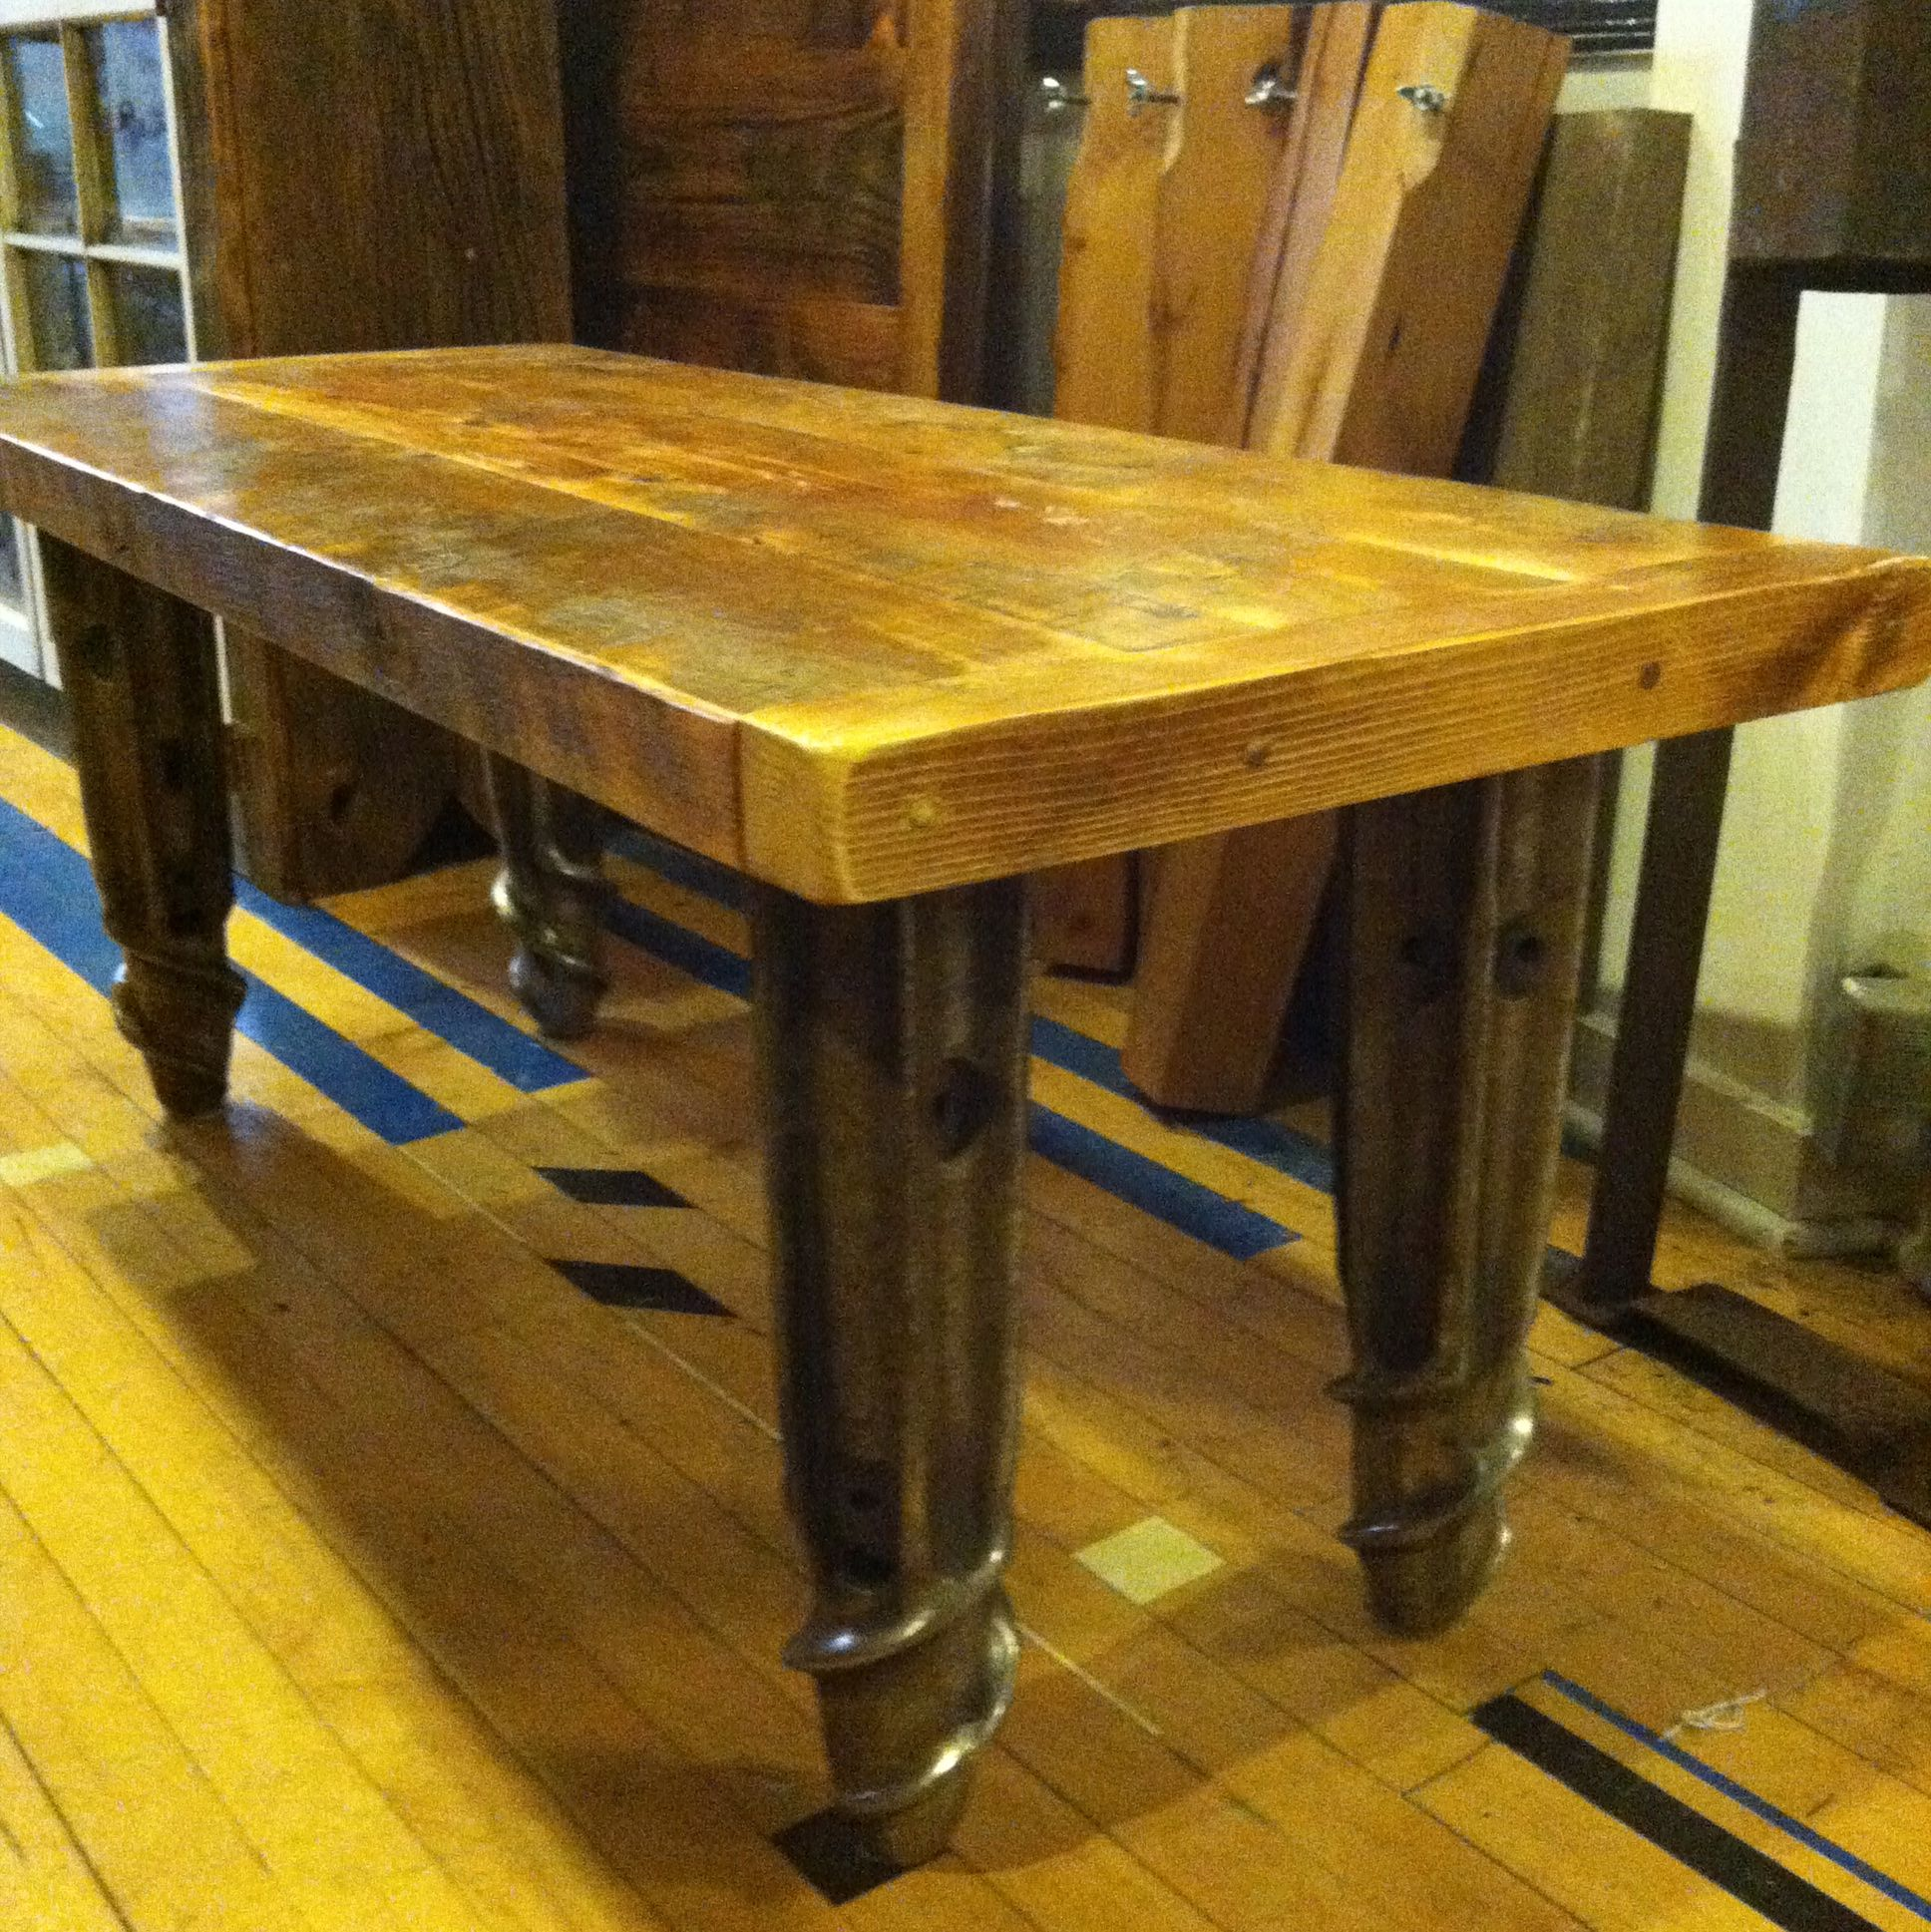 Repurposed salvage barn wood coffee table with salvage industrial